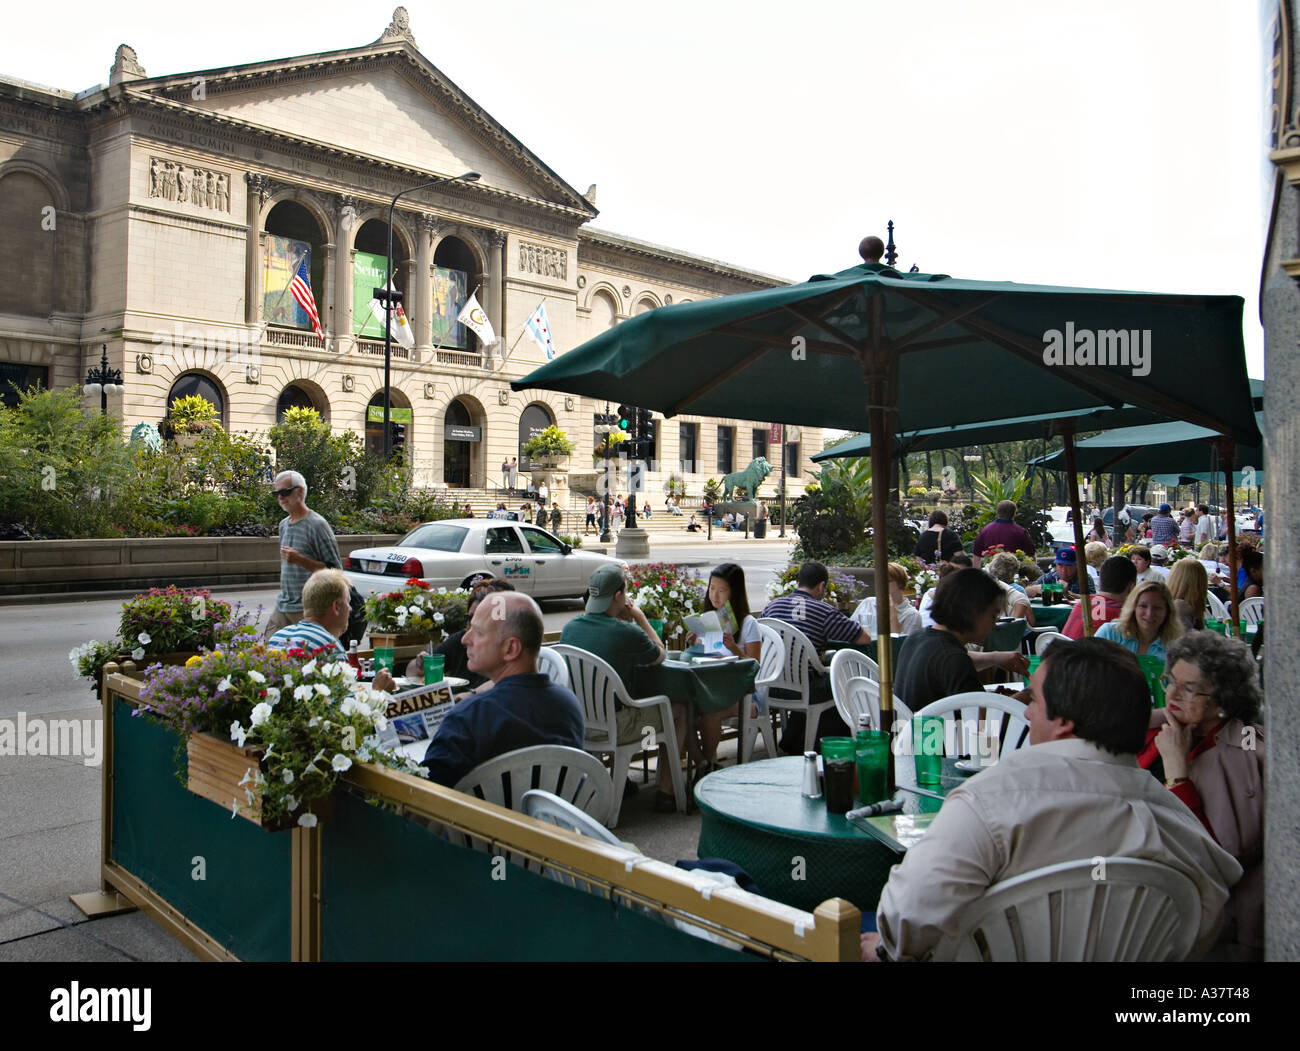 illinois chicago outdoor dining across from art institute of chicago